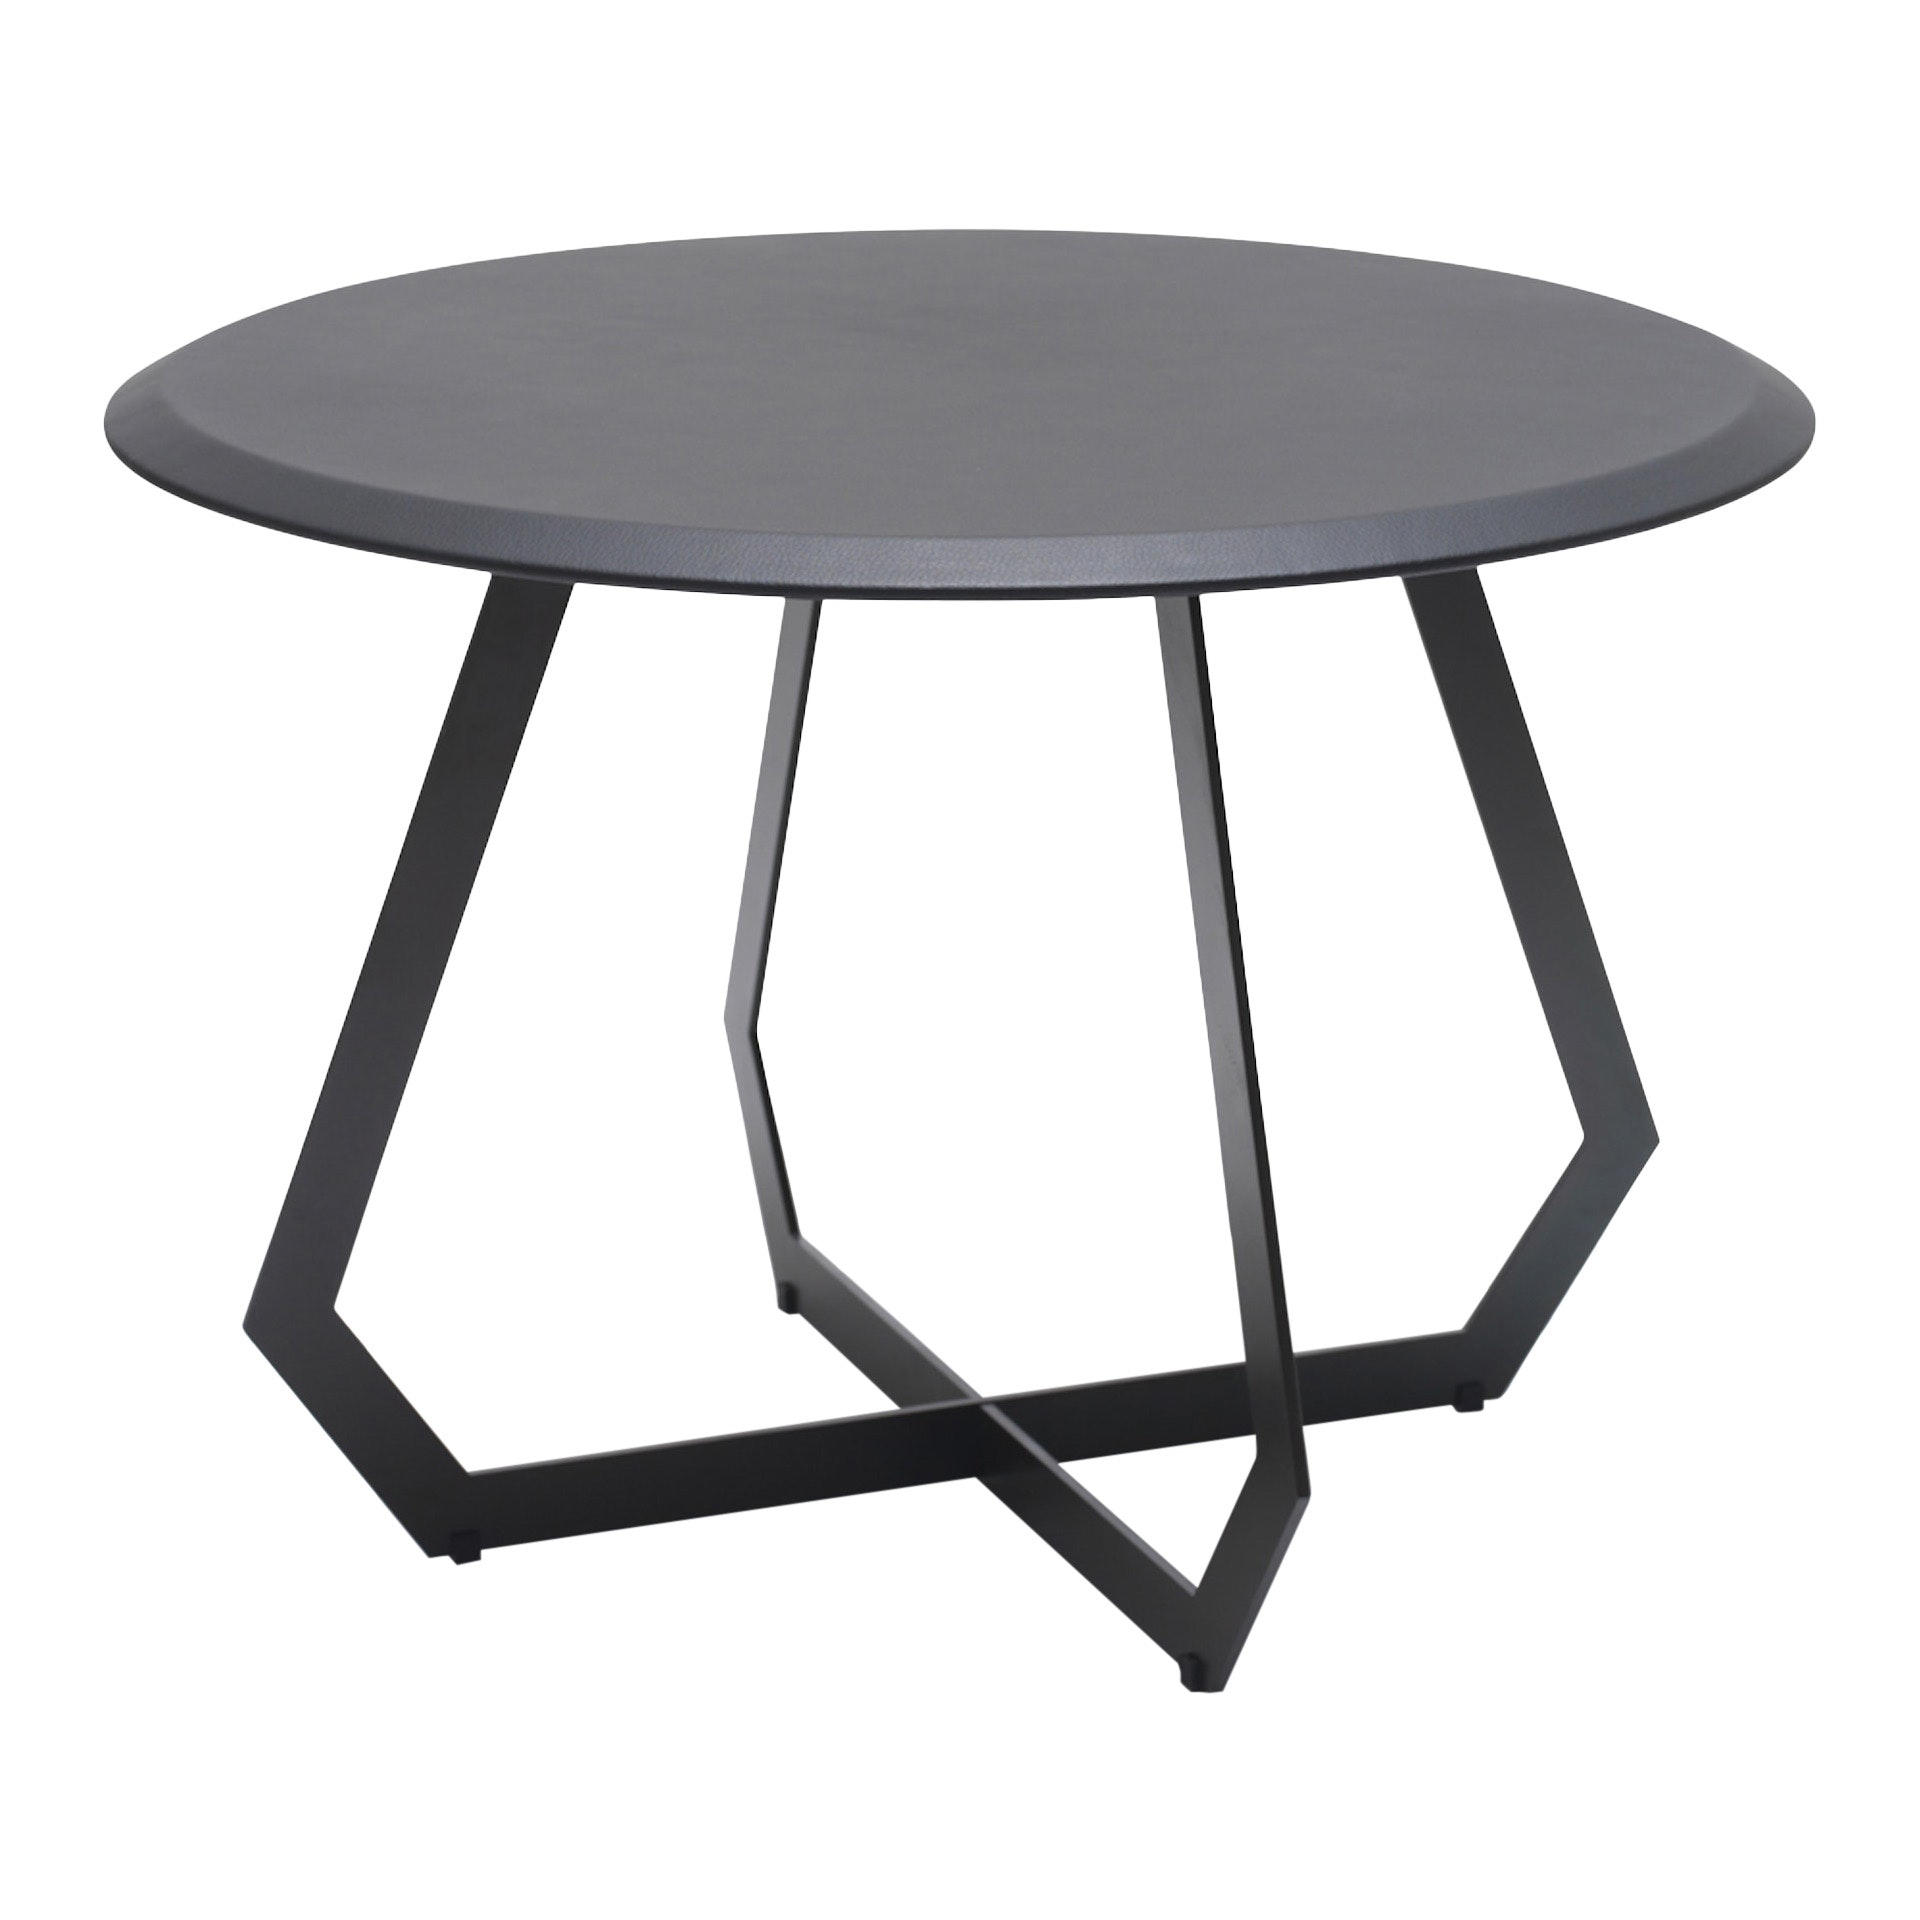 the table black large leather contemporary transitional mid century modern side end tables dering hall raw iron base top ethan allen toronto cherry and coffee round glass kitchen